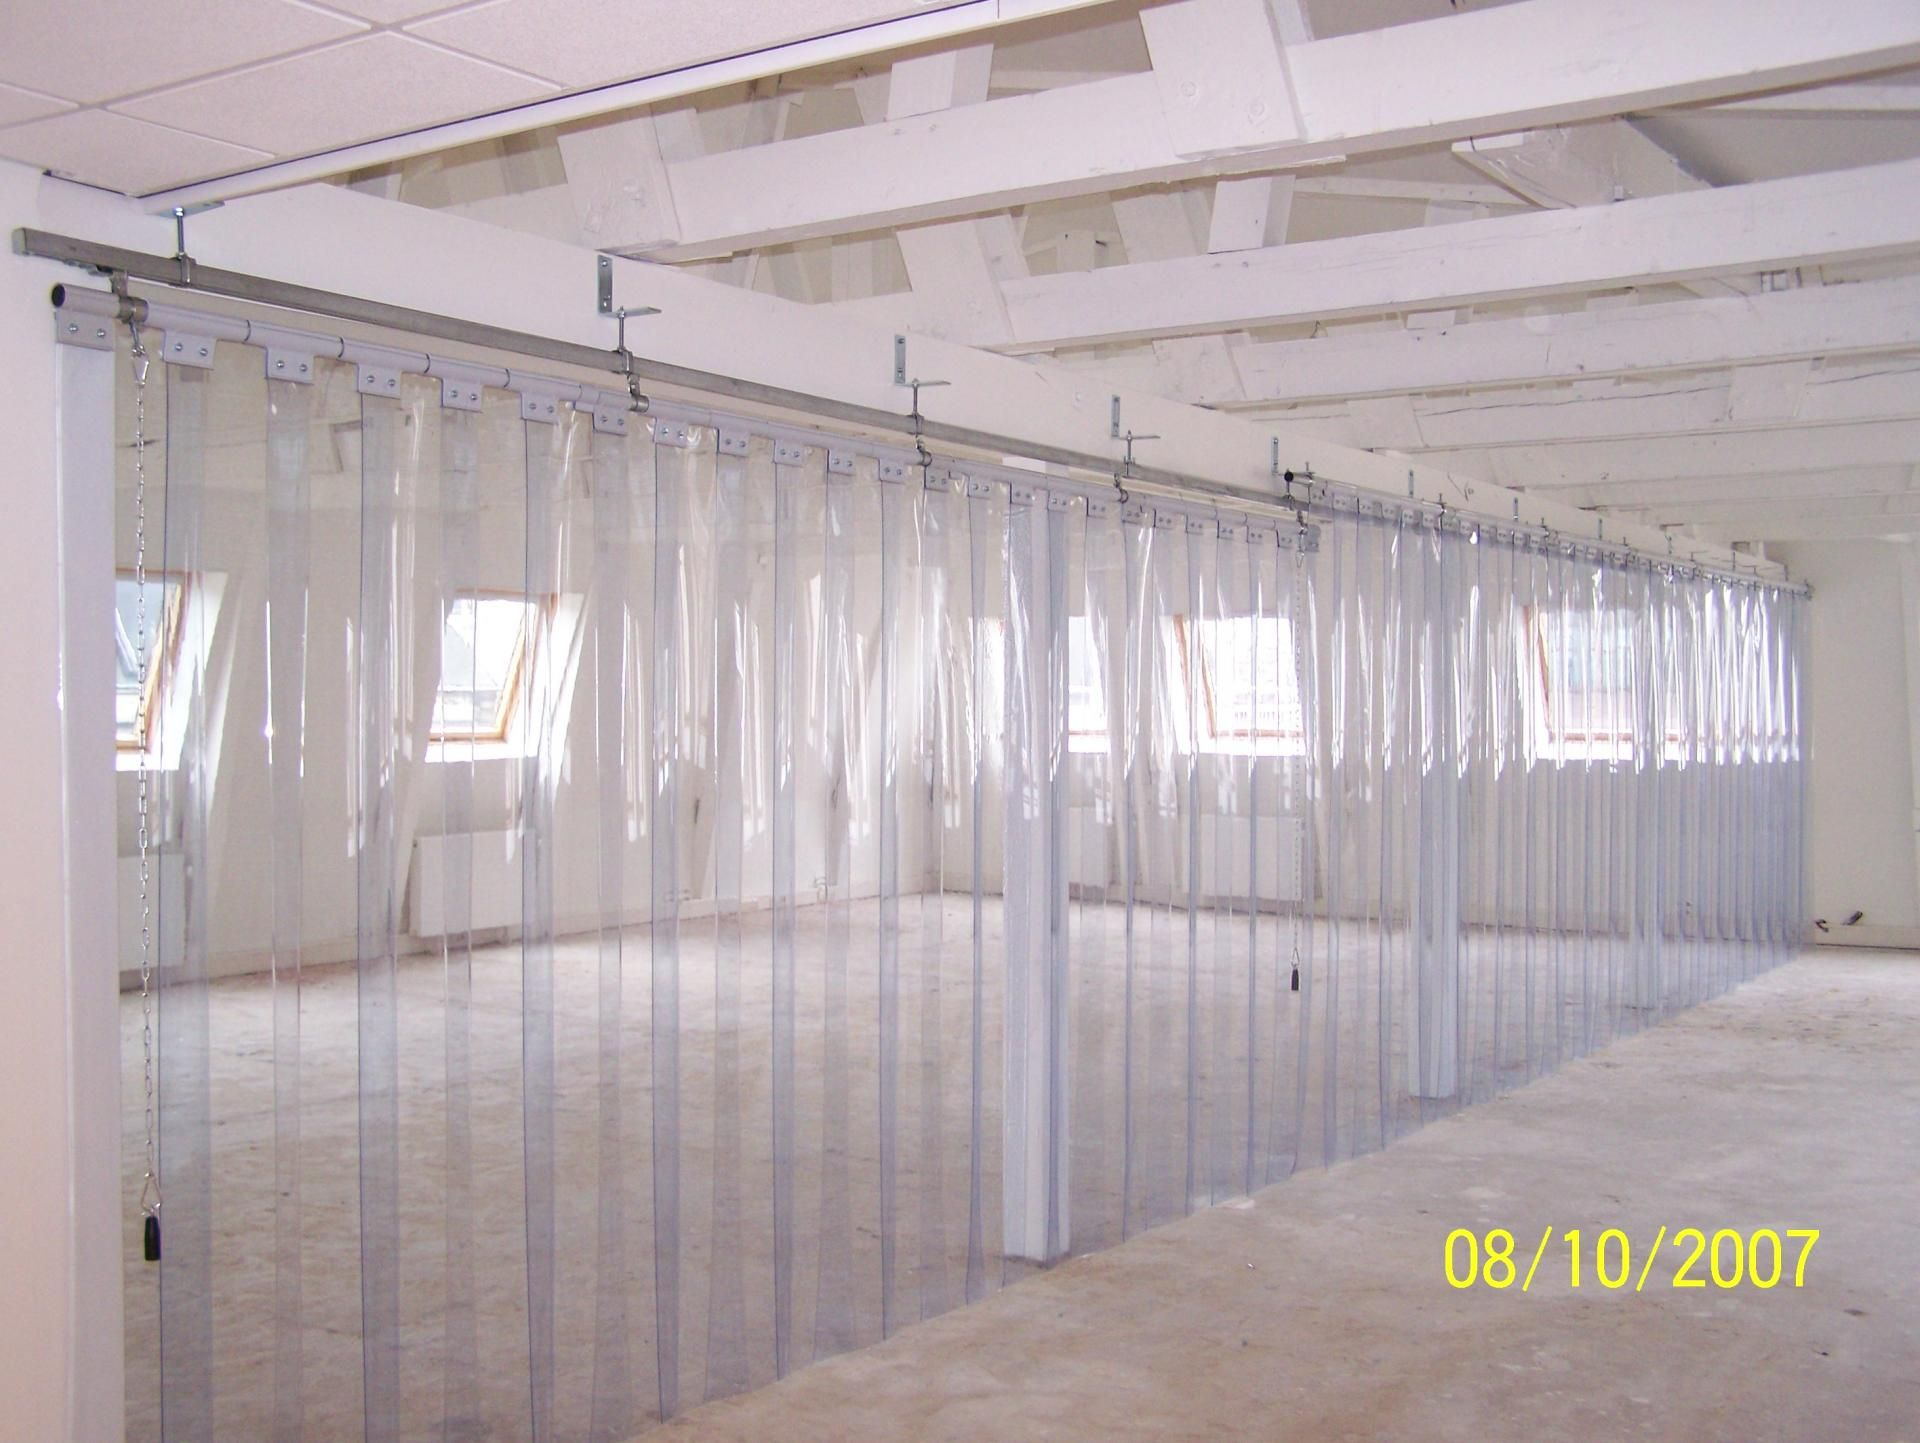 Industrial Pvc Curtains By Haagh Protection Bv Archello